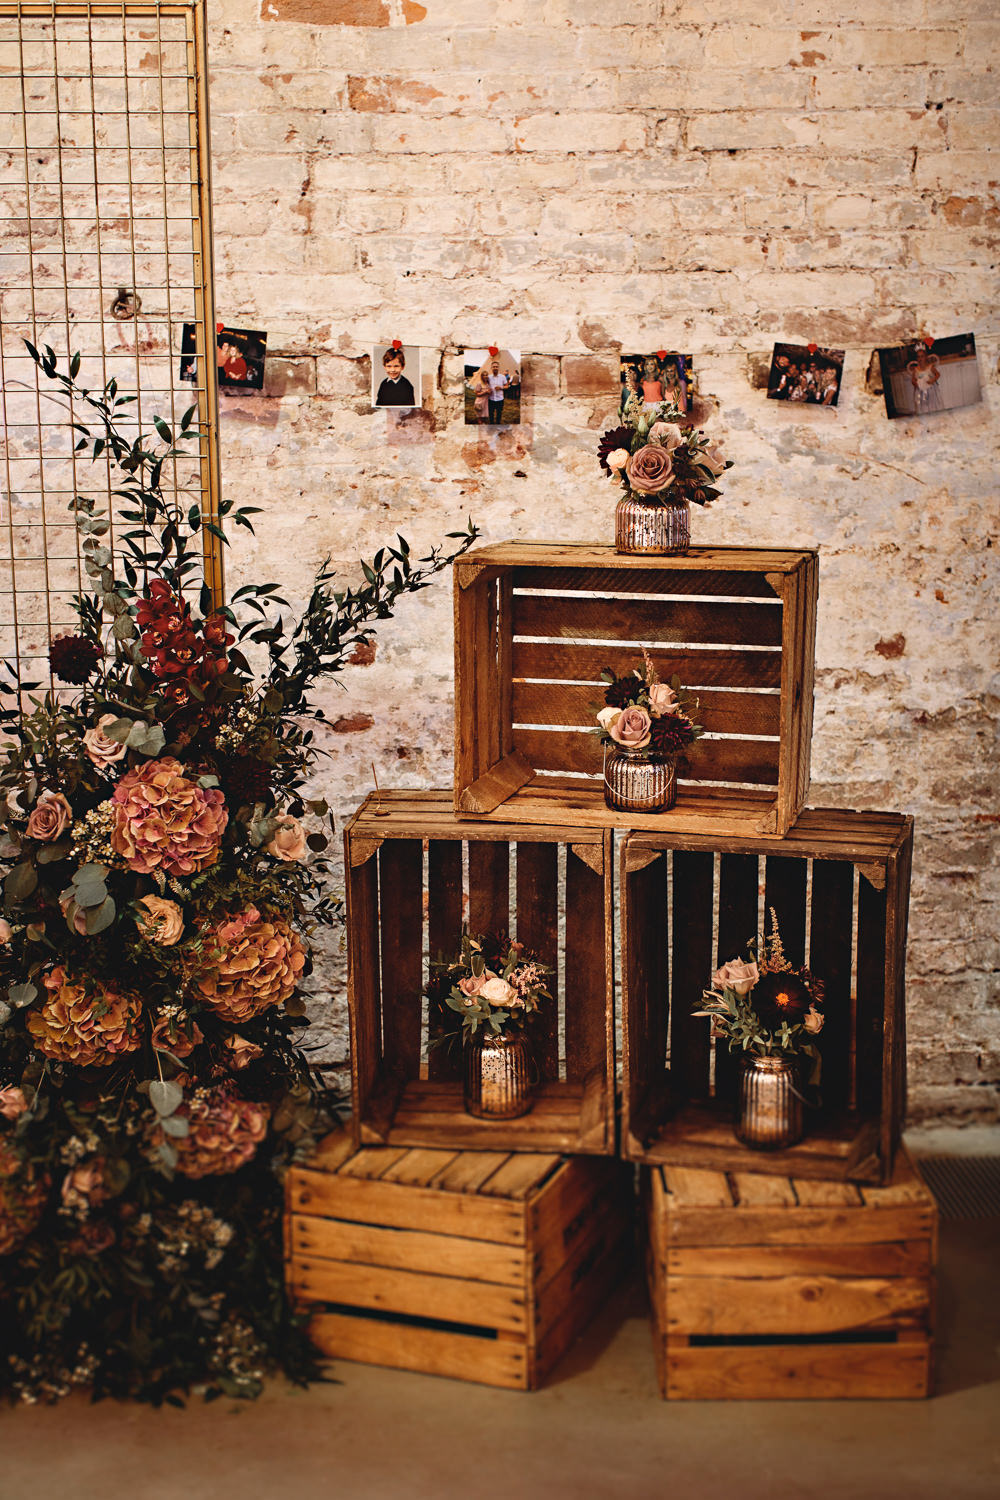 Wooden Crate Decor Flowers Calke Abbey Wedding HBA Photography